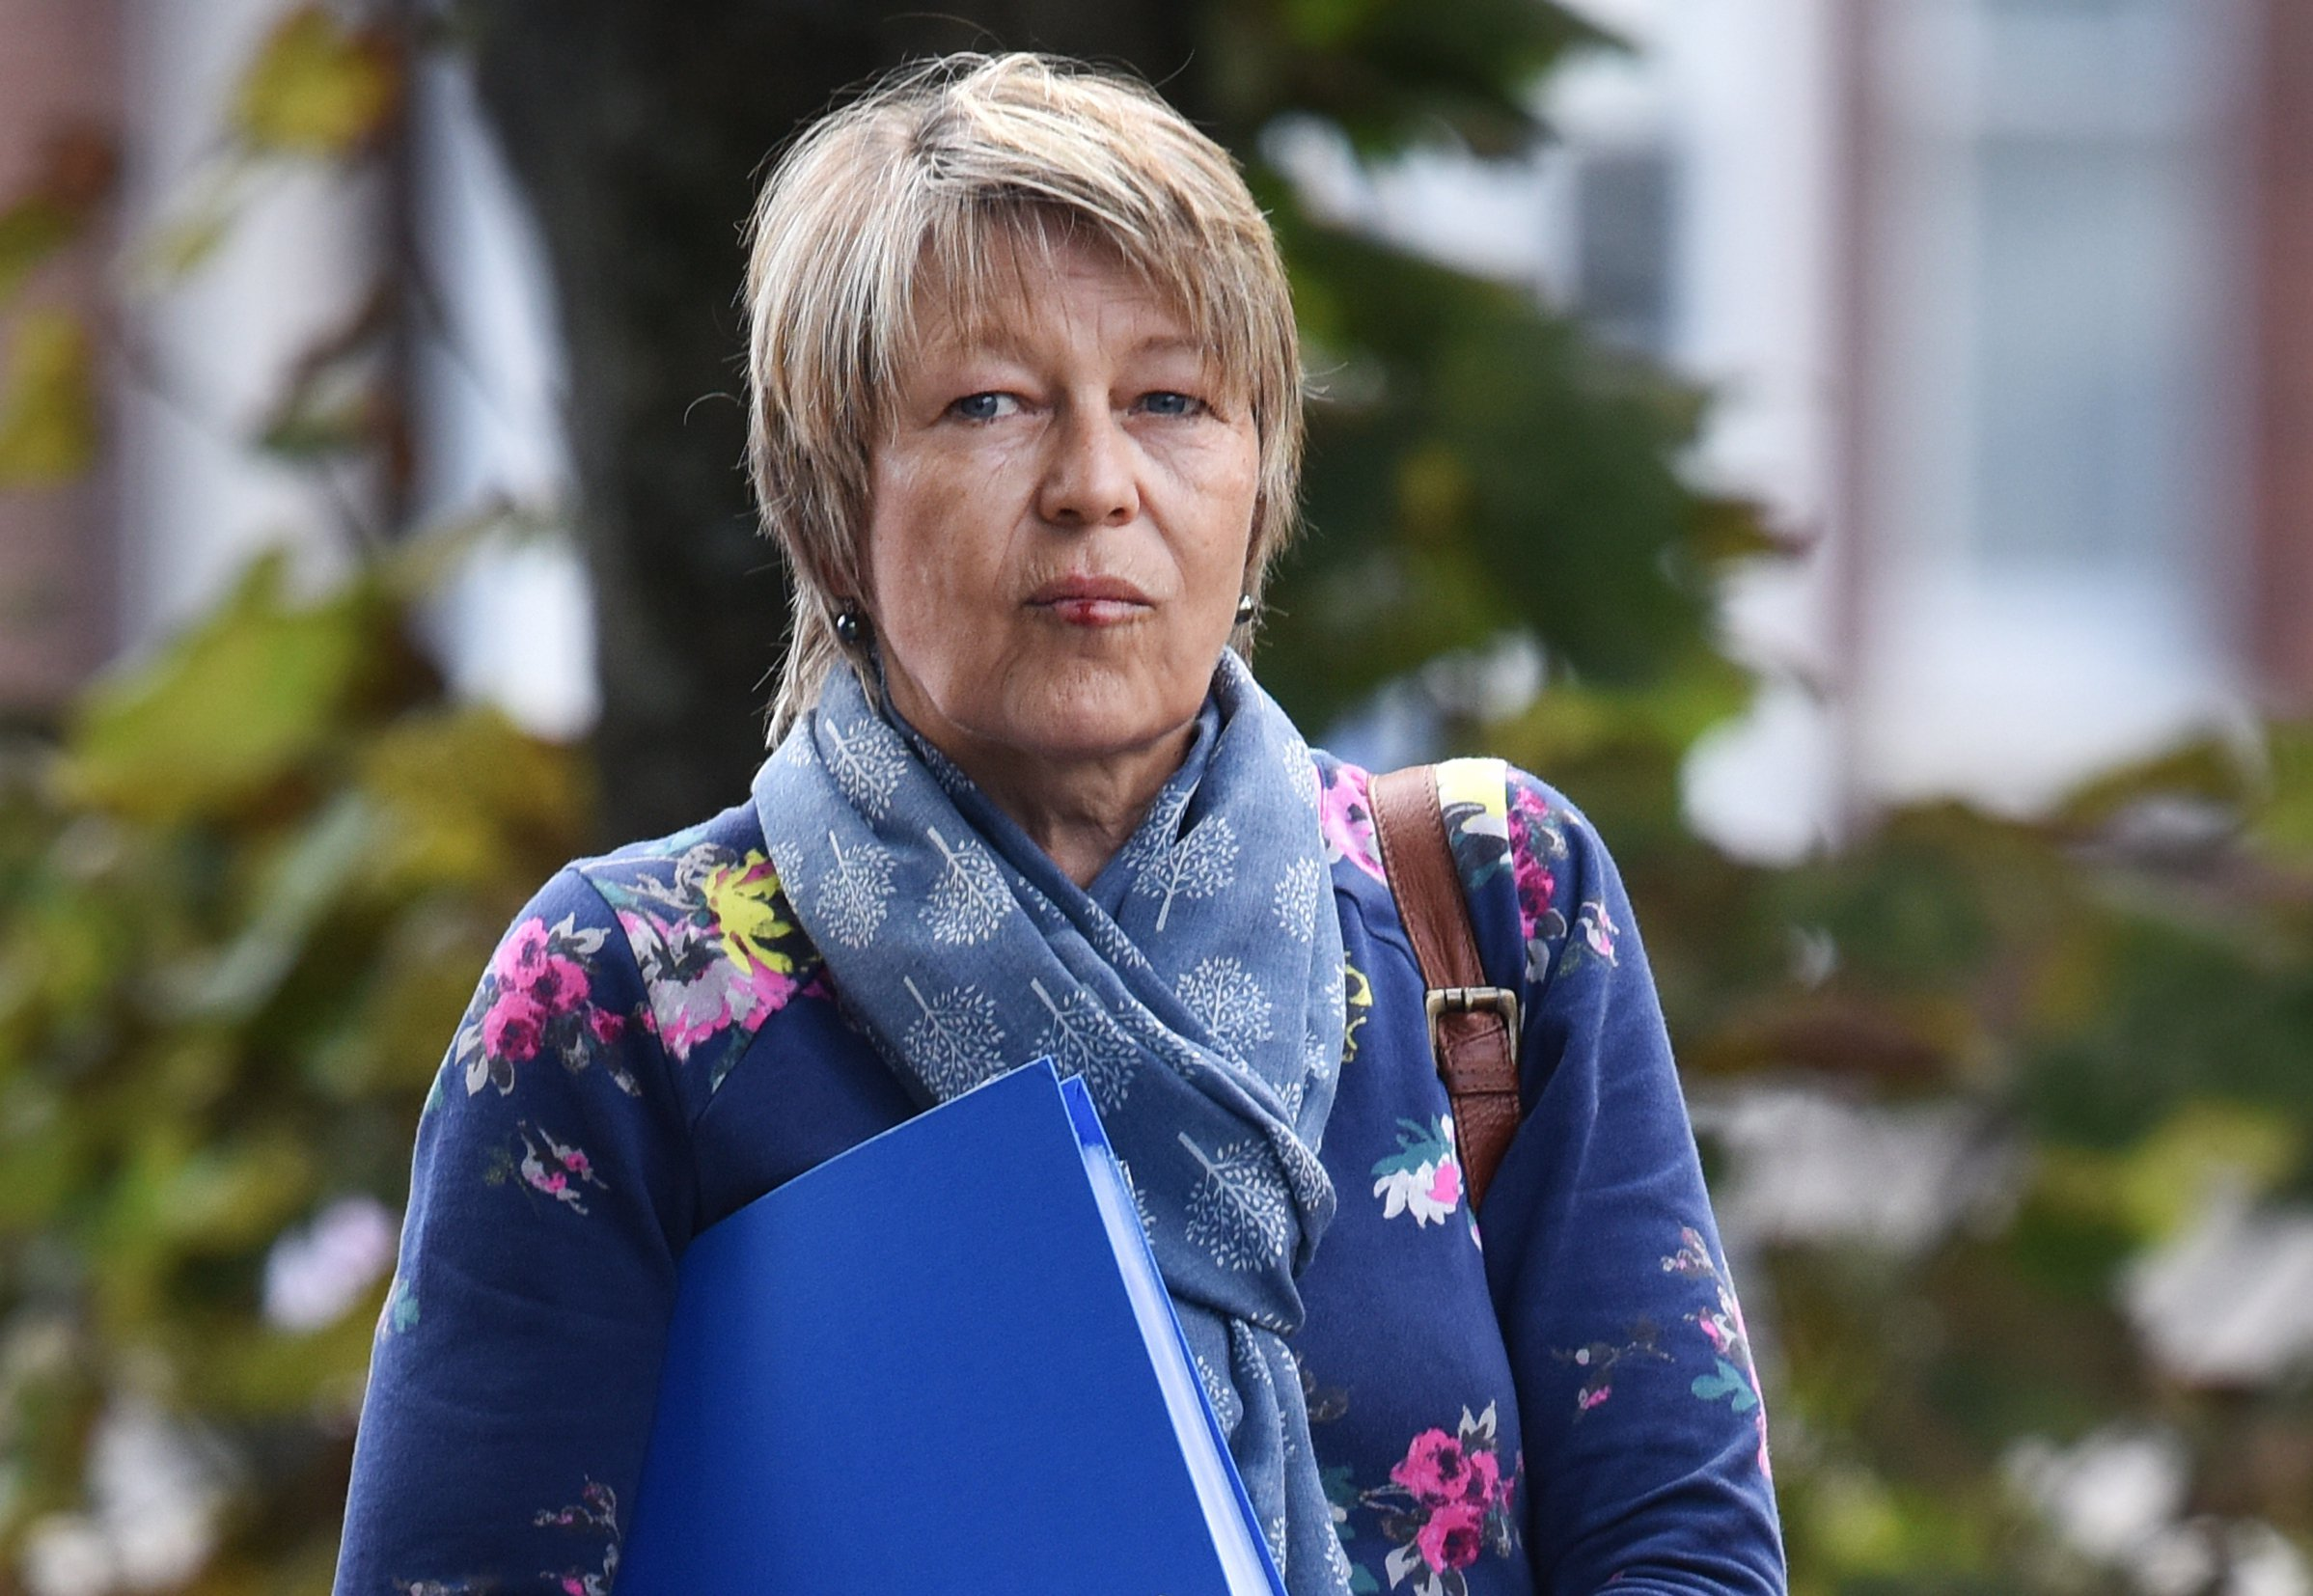 Pictured: Jane Farmer at Southampton Magistrates Court. A respected school secretary who lost her job after she was convicted of slapping a 15-year-old schoolboy has now appealed her conviction. Jane Farmer was found guilty of assault by beating and sentenced to 100 hours unpaid work after a trial at Southampton Magistrates Court, Hants. Farmer, who had enjoyed an unblemished 12-year career, struck the pupil while working at Arnewood School in New Milton, Hants. SEE OUR COPY FOR DETAILS. ? Solent News & Photo Agency UK +44 (0) 2380 458800